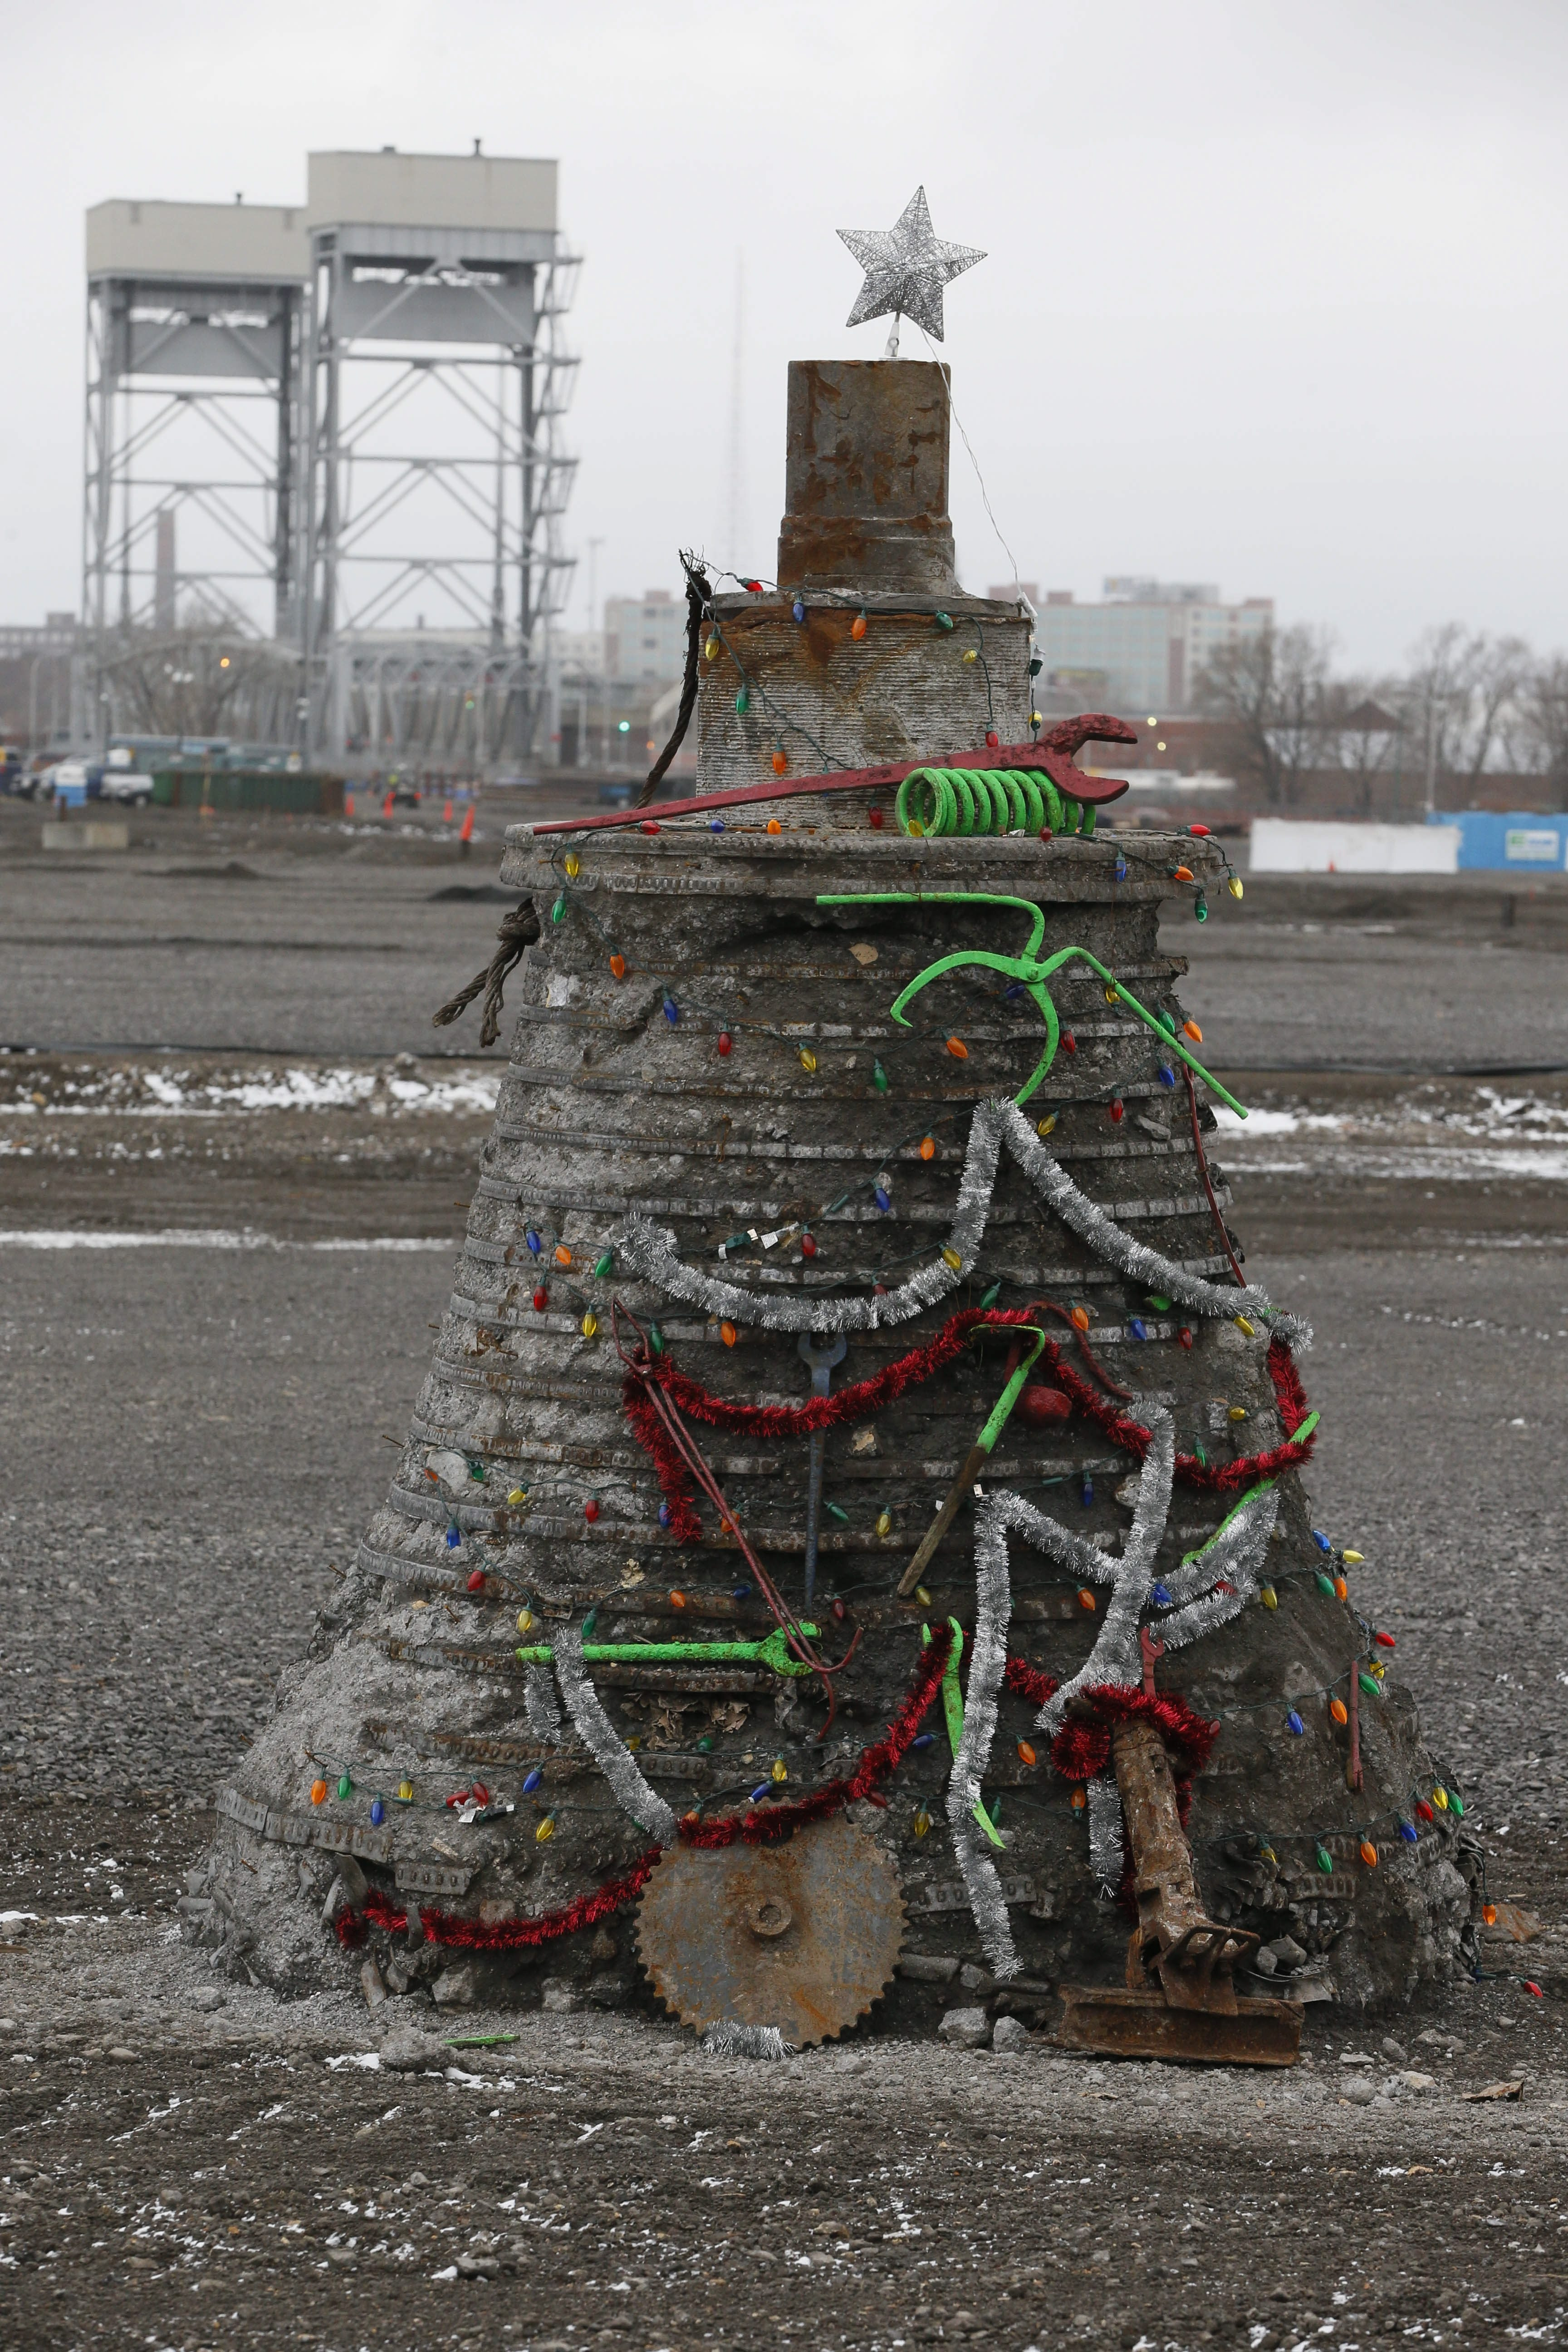 Christmas spirit and the ingenuity of workers at the RiverBend site turned an industrial relic into a makeshift Christmas tree. (Derek Gee/Buffalo News)